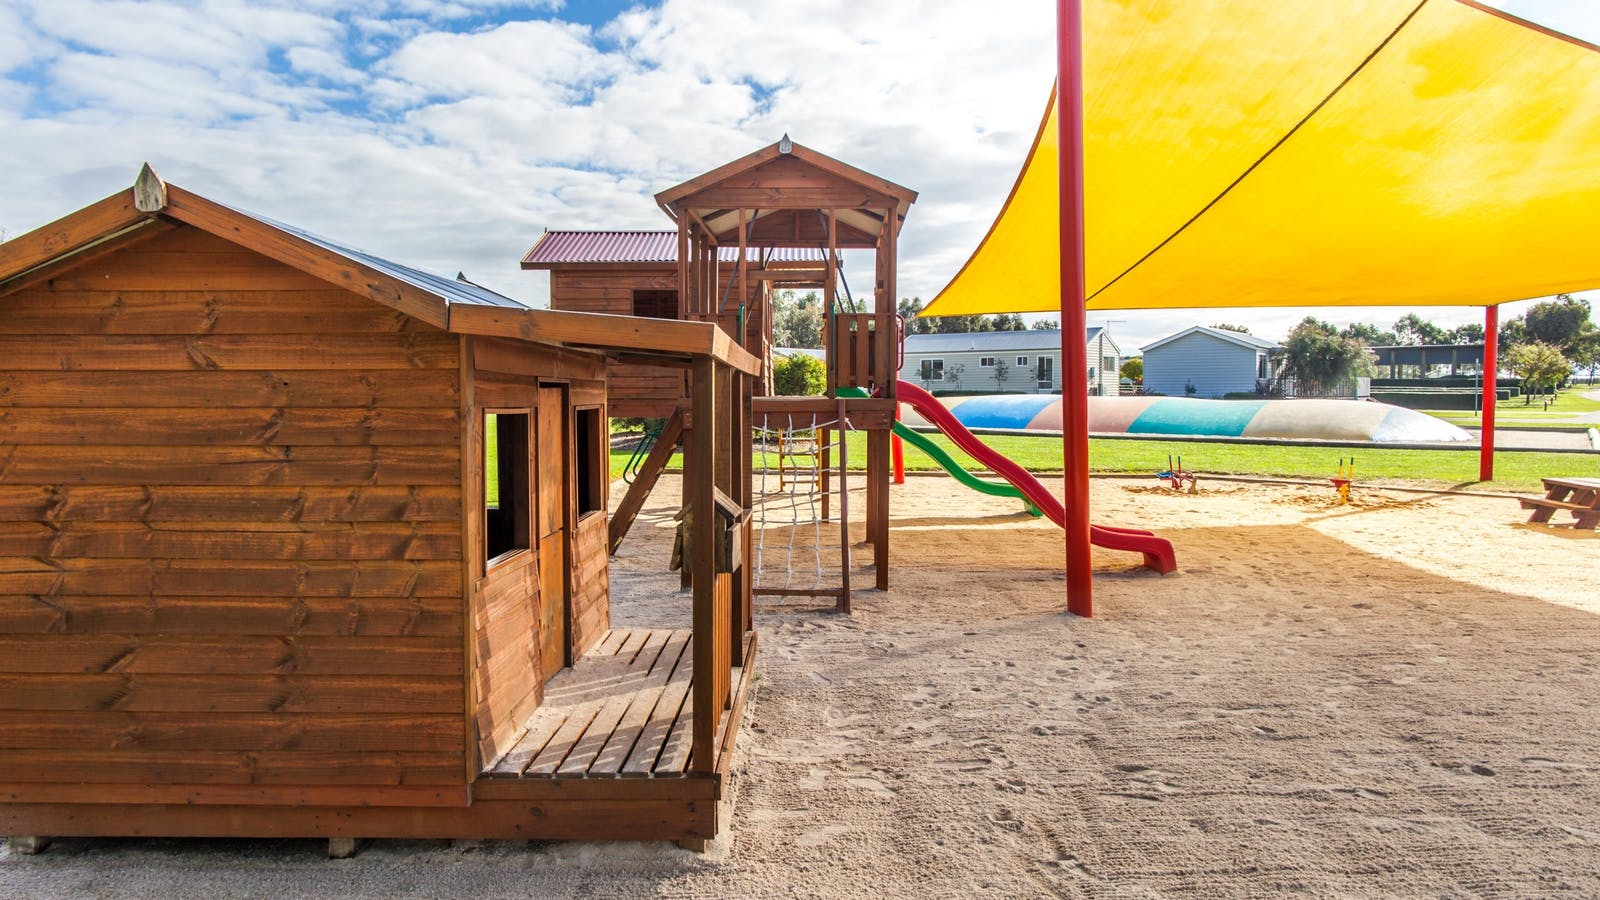 BIG4 Bellarine adventure playground